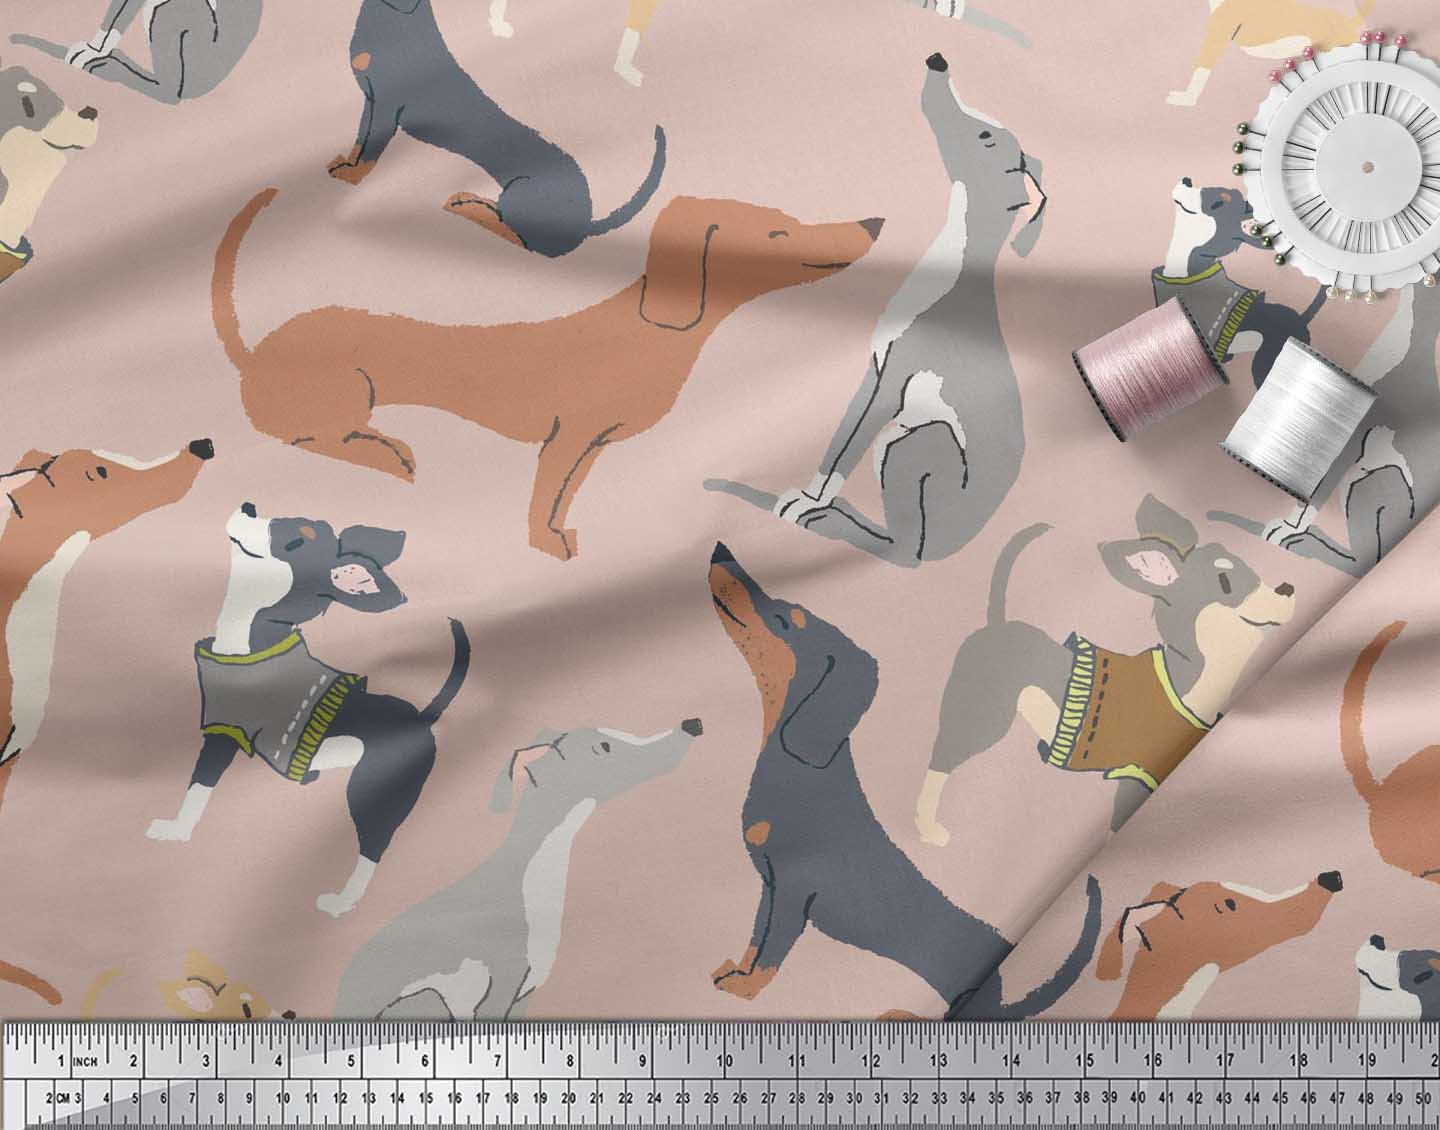 Soimoi-Pink-Cotton-Poplin-Fabric-Cute-Dog-Printed-Craft-Fabric-by-GoO thumbnail 3